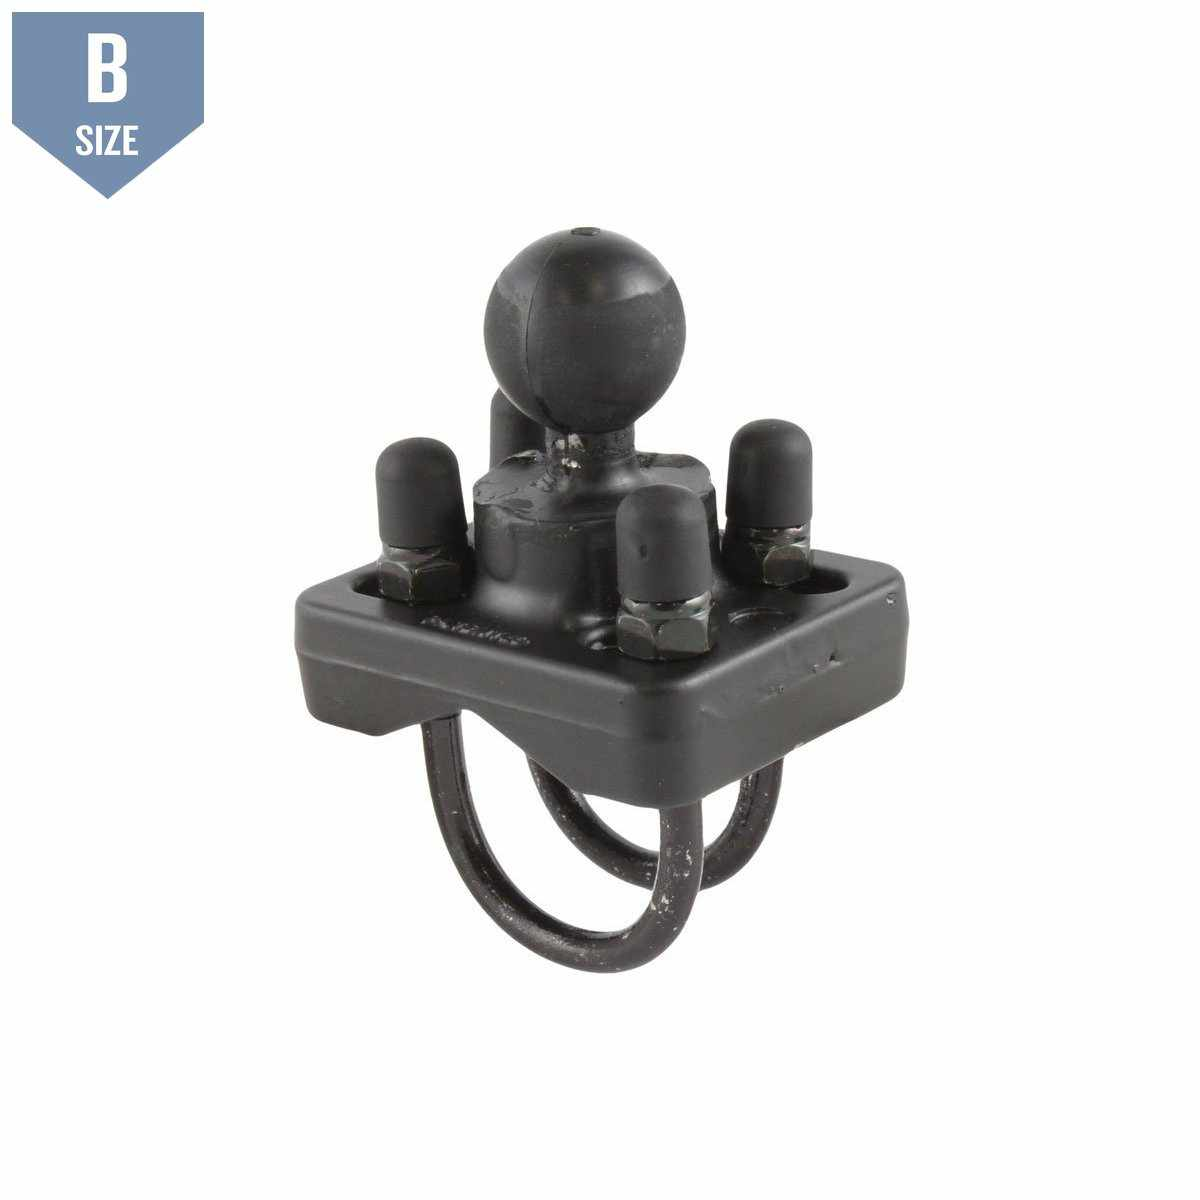 "RAM Double U-Bolt Base w 1"" B Ball for 1"" - 1.25"" Rails (RAM-B-235U) - Modest Mounts"